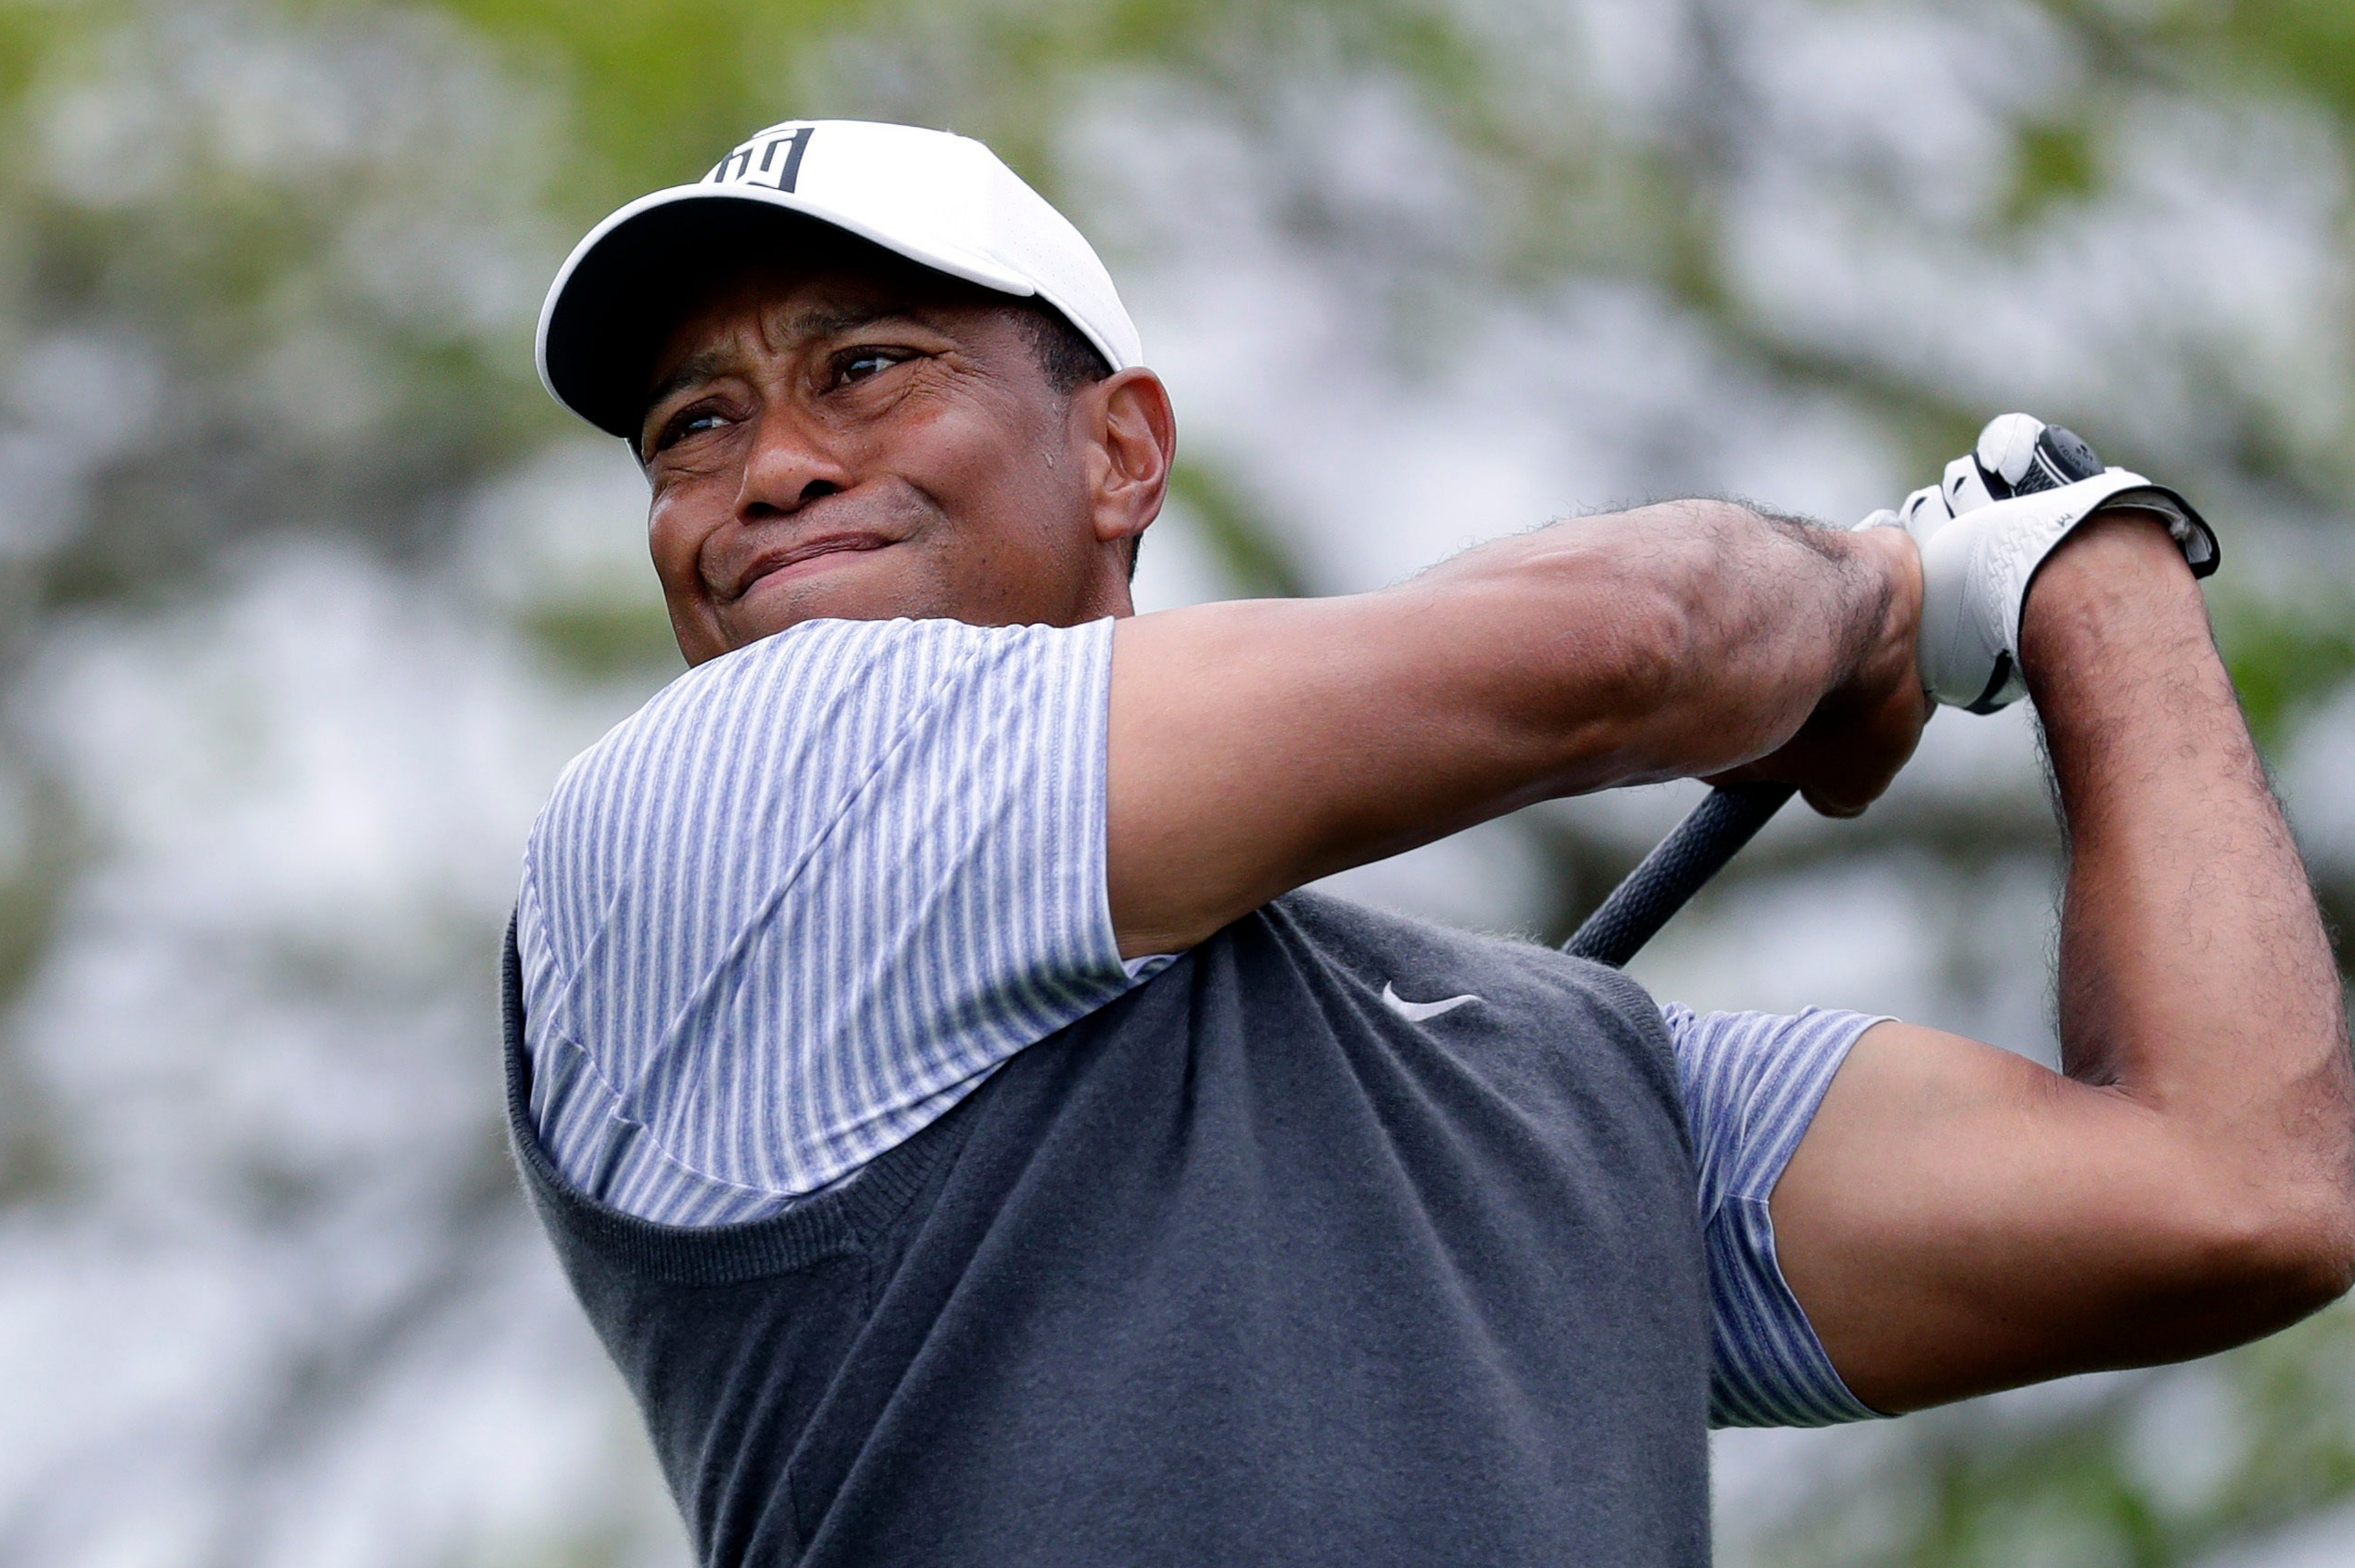 Police won't reveal cause of Tiger Woods crash over 'privacy concerns